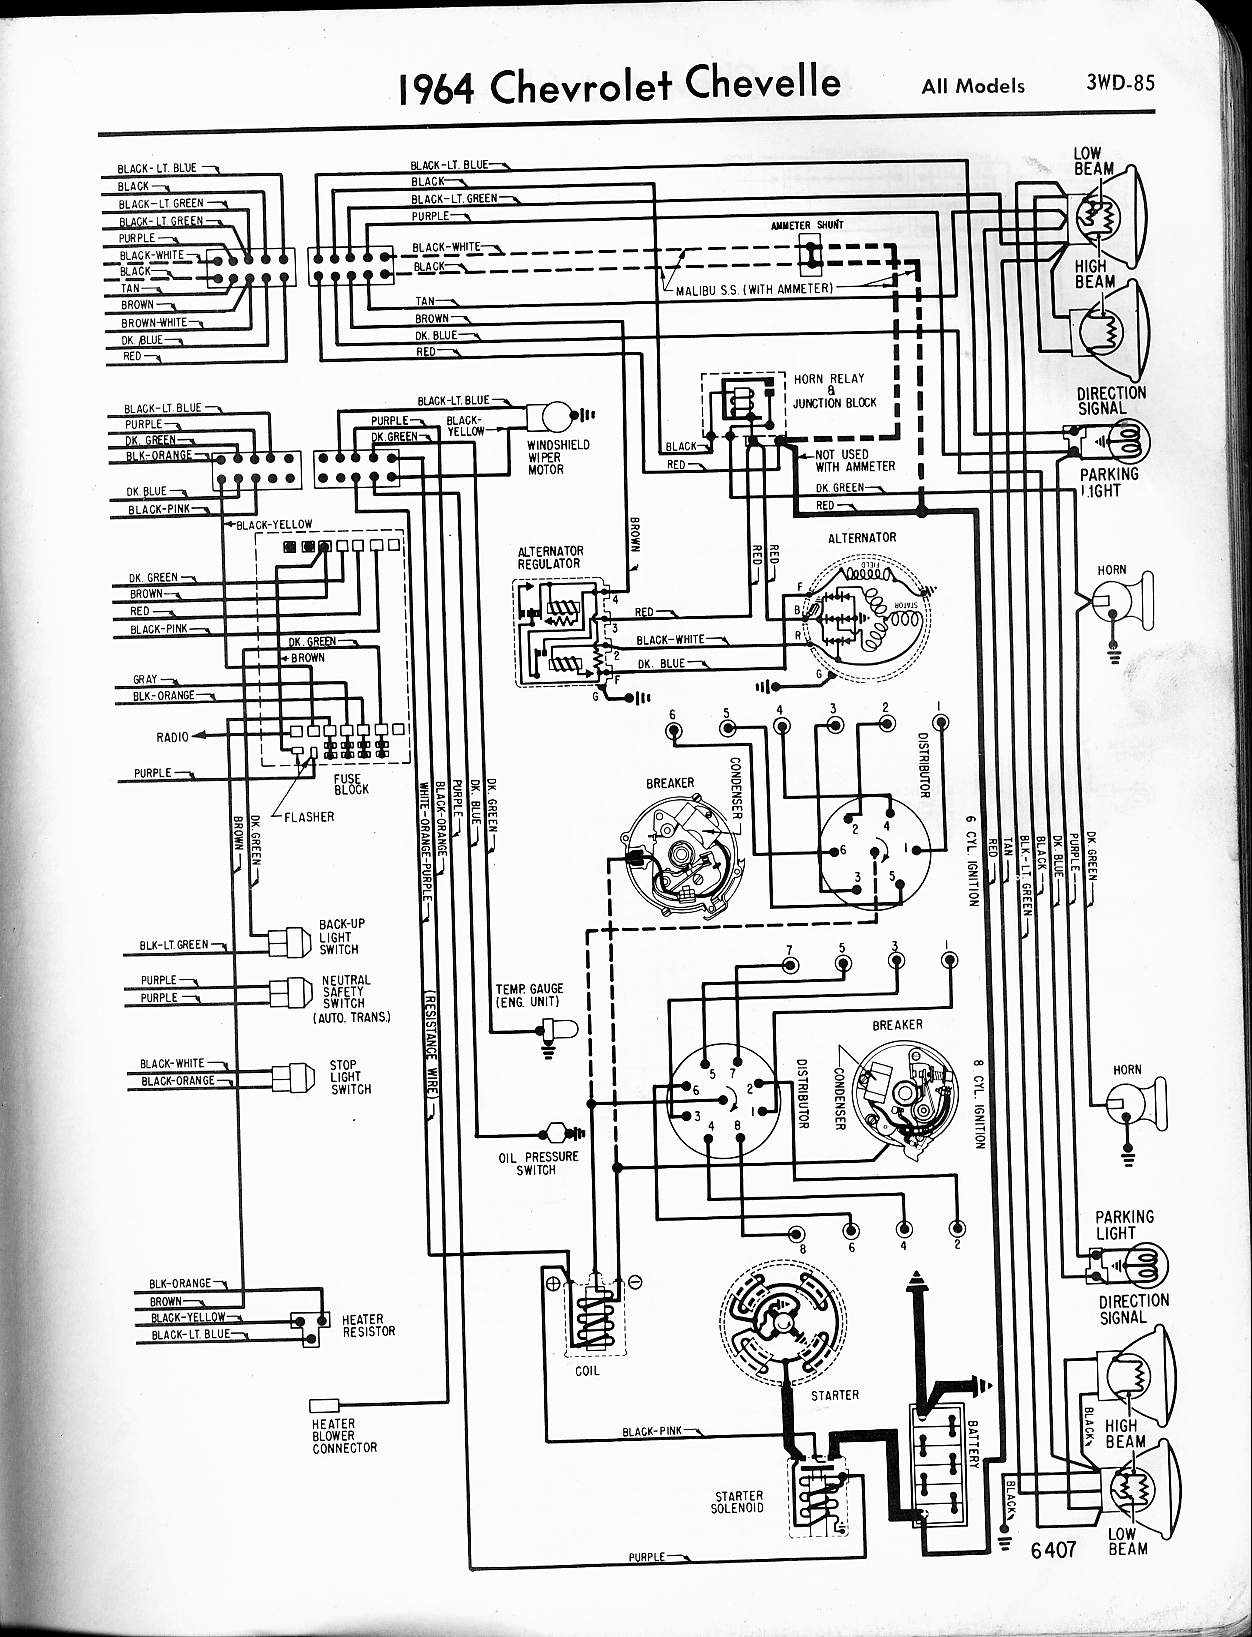 Chevy Diagrams Gm Heater Wiring Harness Diagram 1964 Chevelle Figure A B